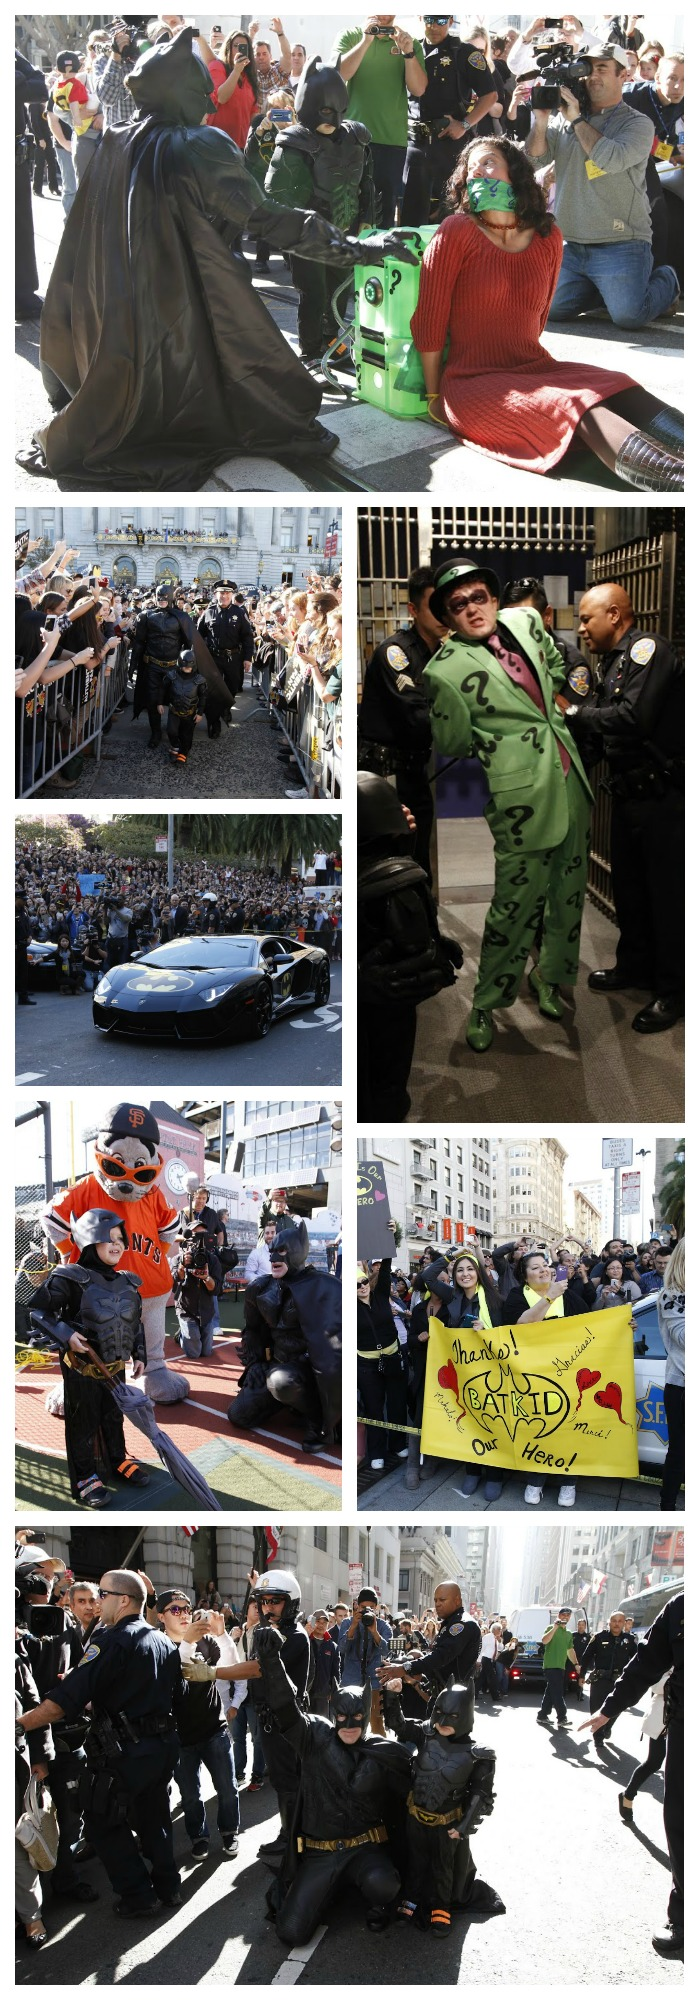 Batkid saves San Francisco aka Gotham City